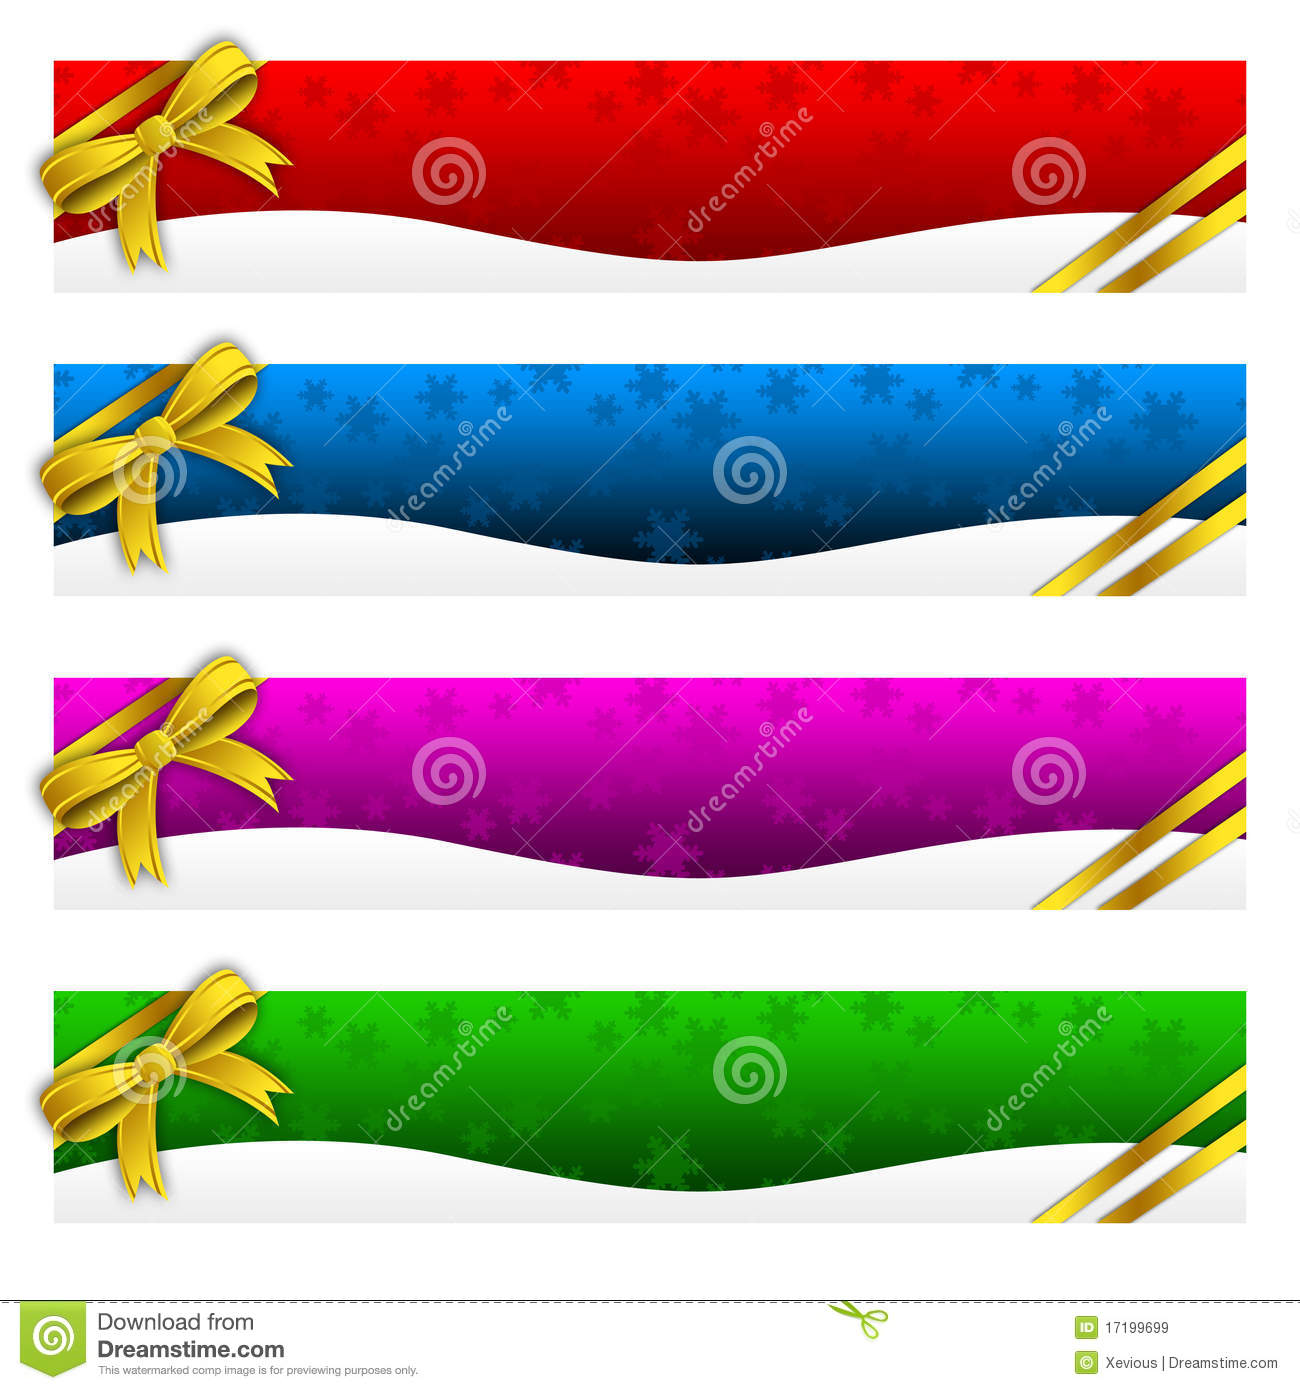 Banner, Winter, Holidays, Christmas